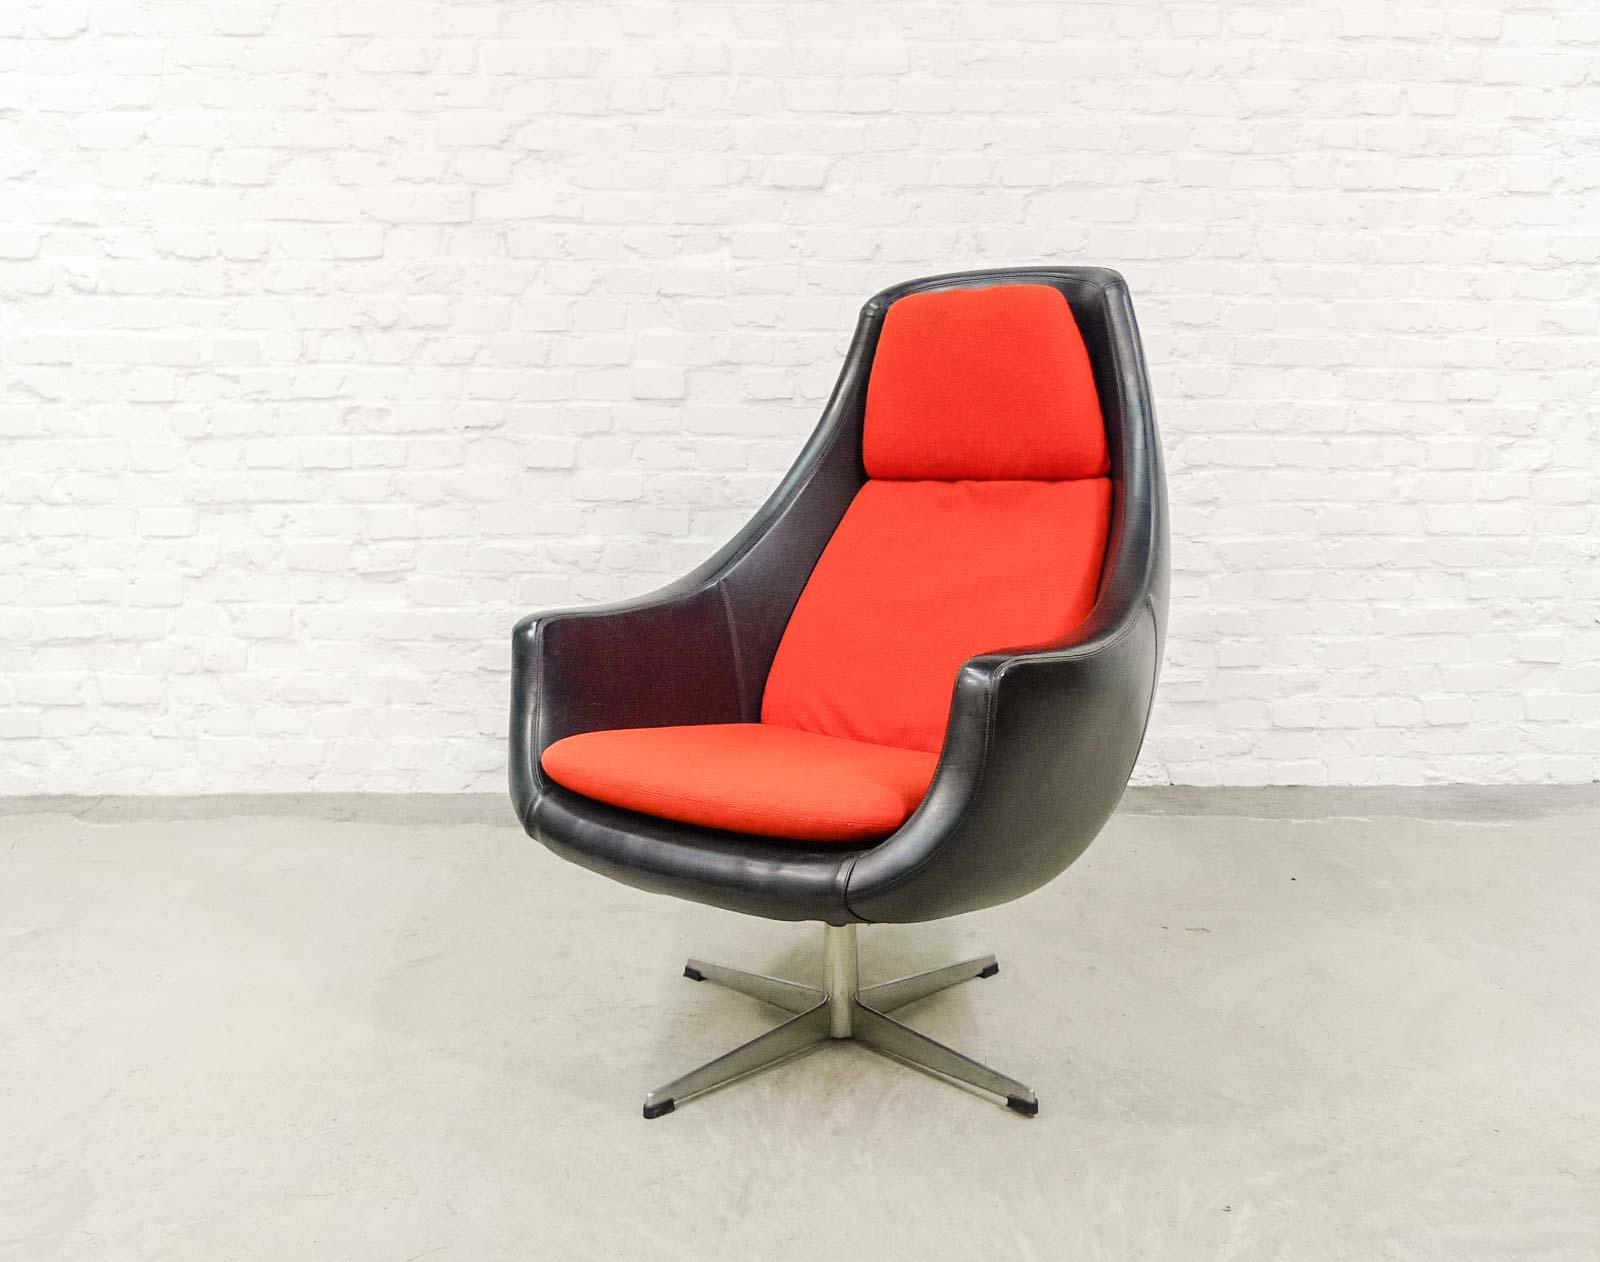 orange egg chair gym twister seat uk black leatherette with in style of arne jacobsen 1970s